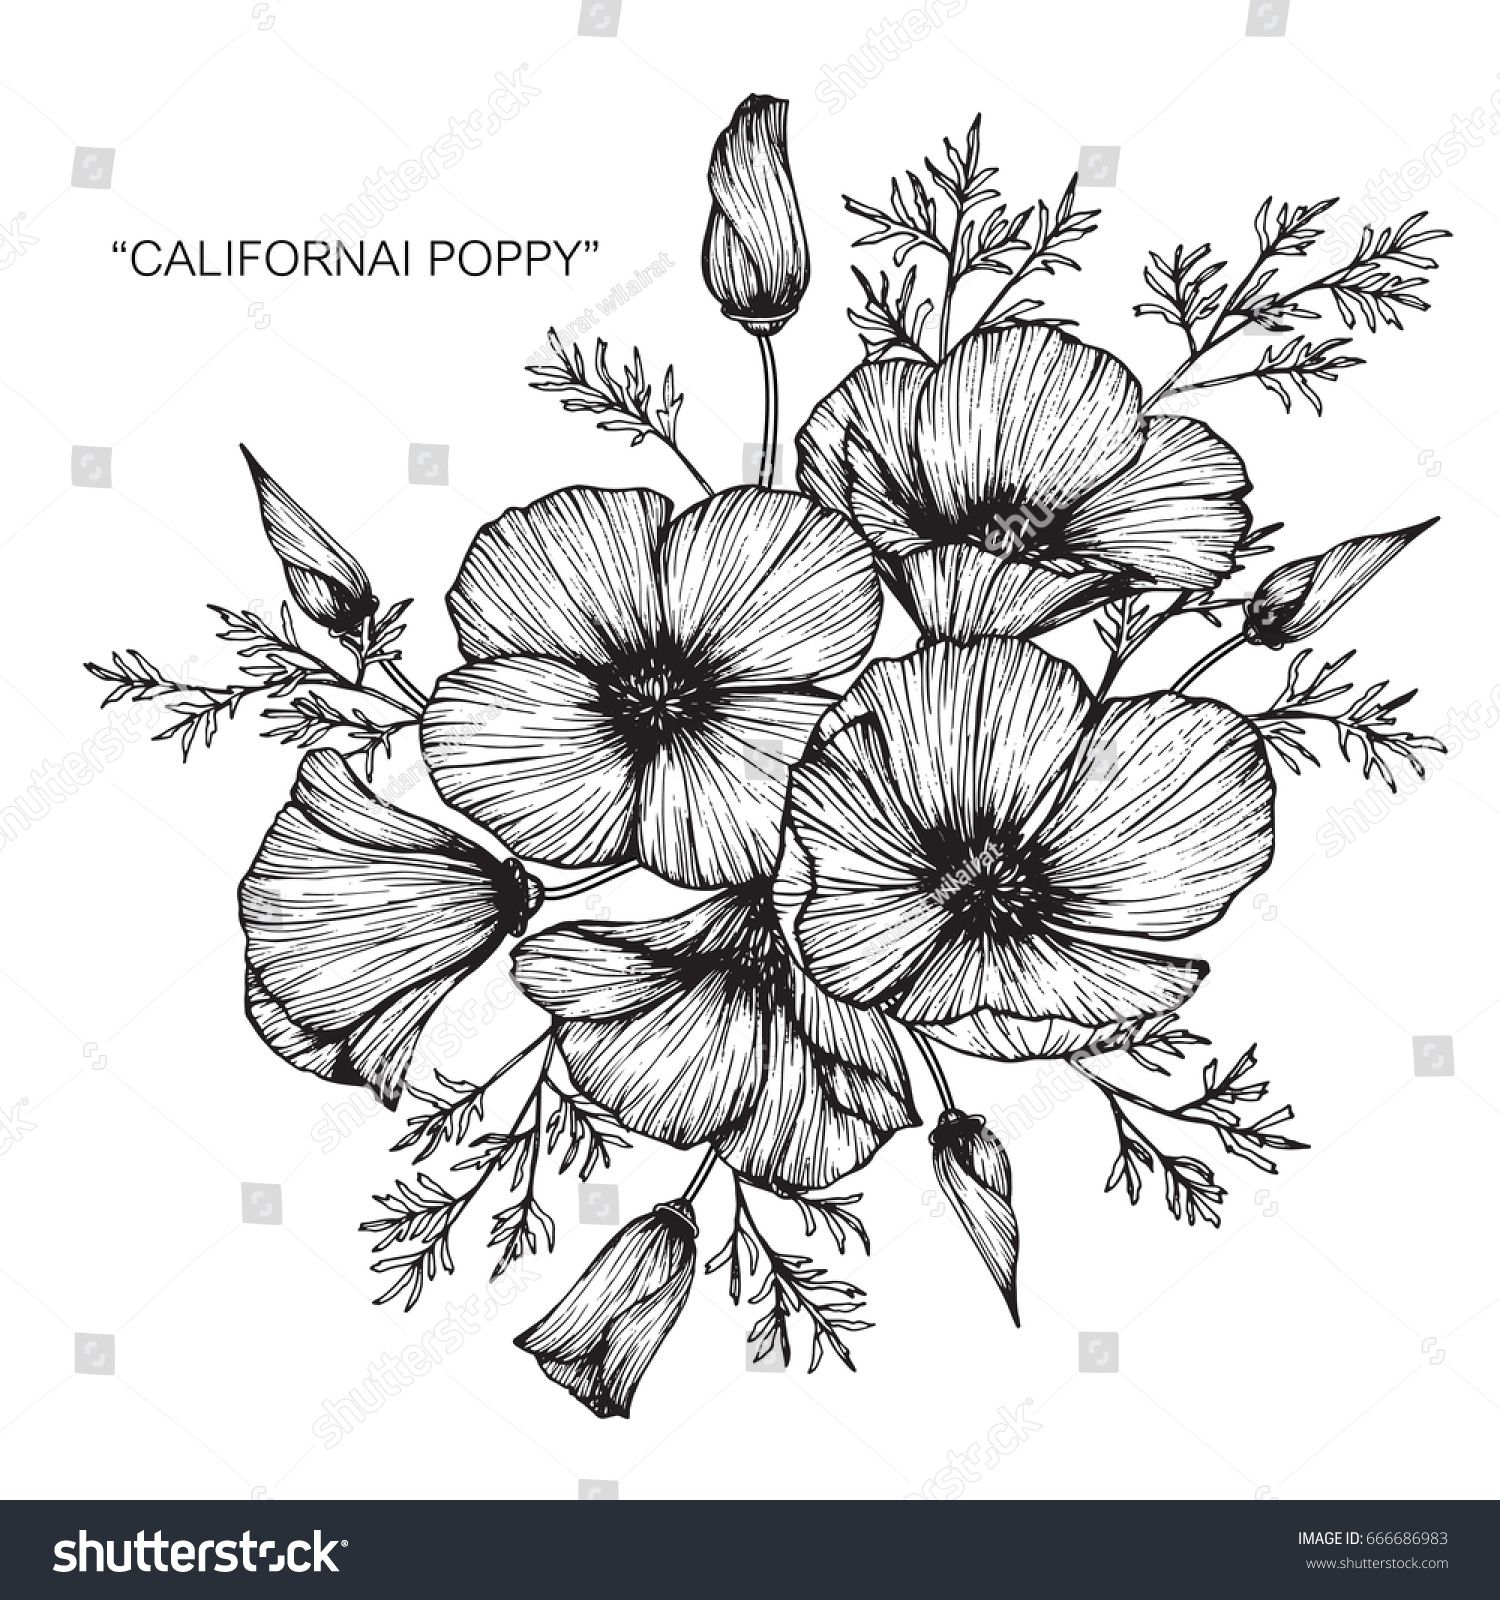 Bouquet Of California Poppy Flowers Drawing And Sketch With Line Art